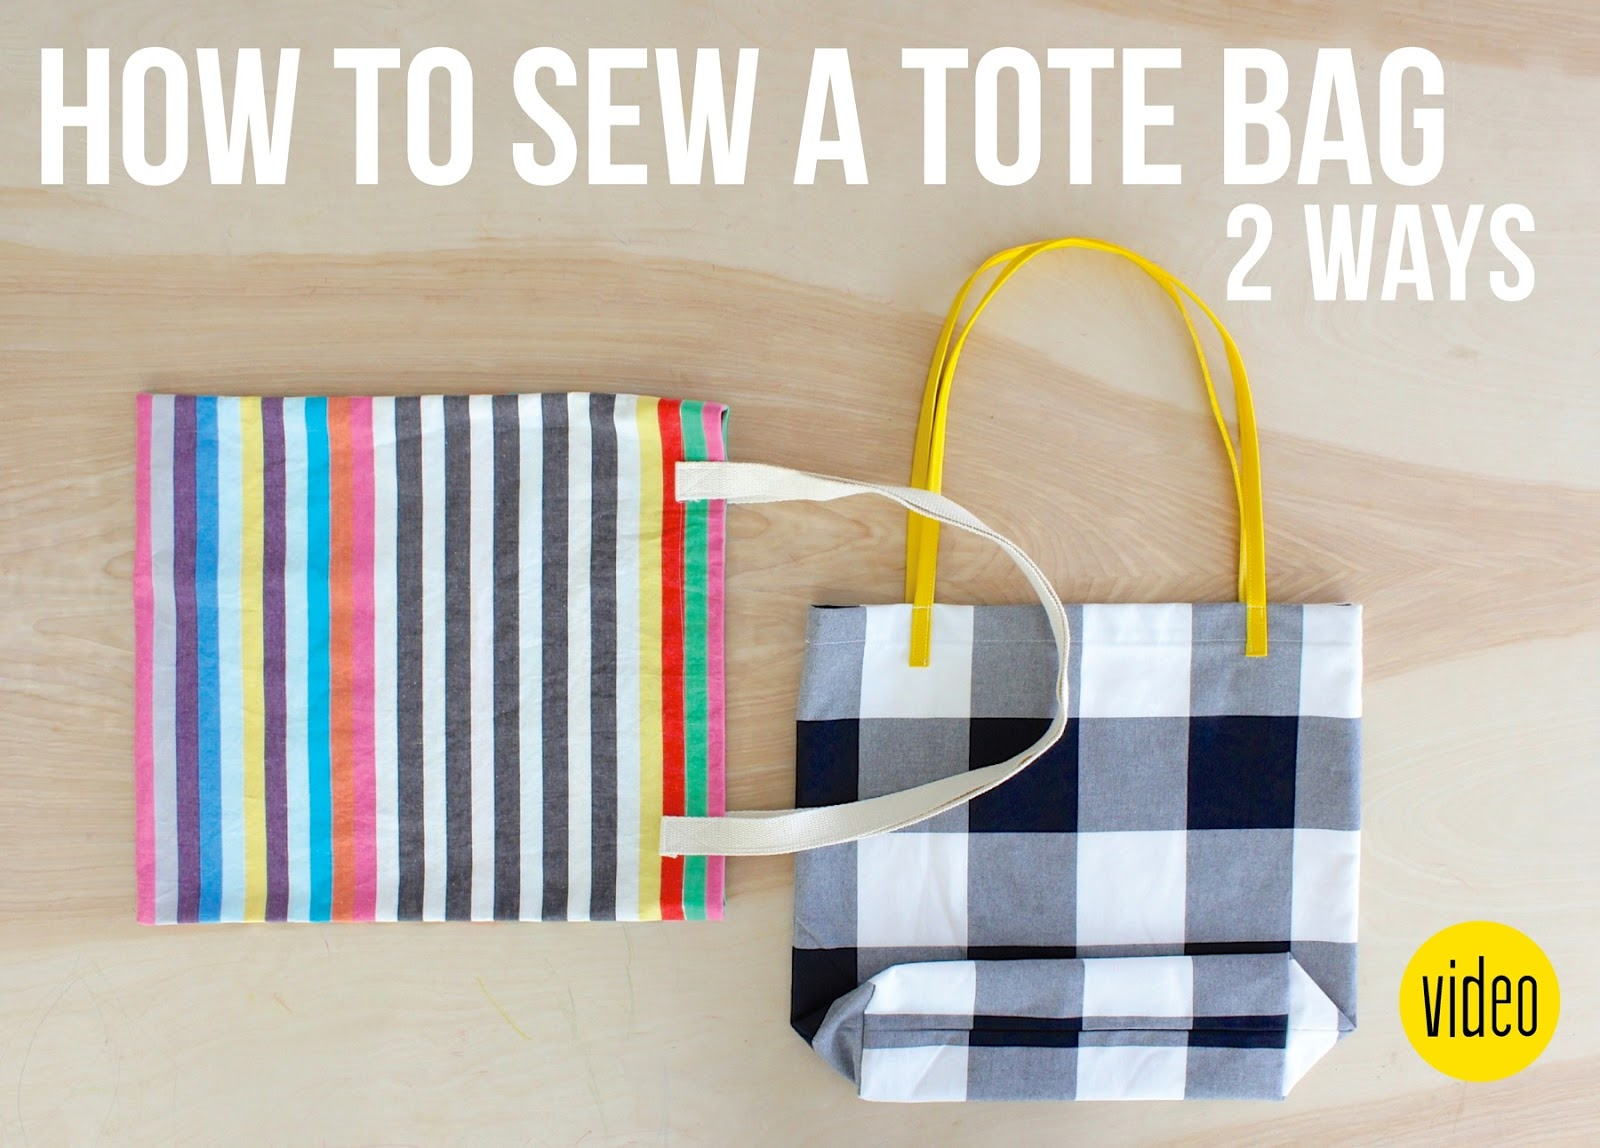 New Video Two Ways To Sew A Tote Bag With A Hidden Surprise Made Everyday